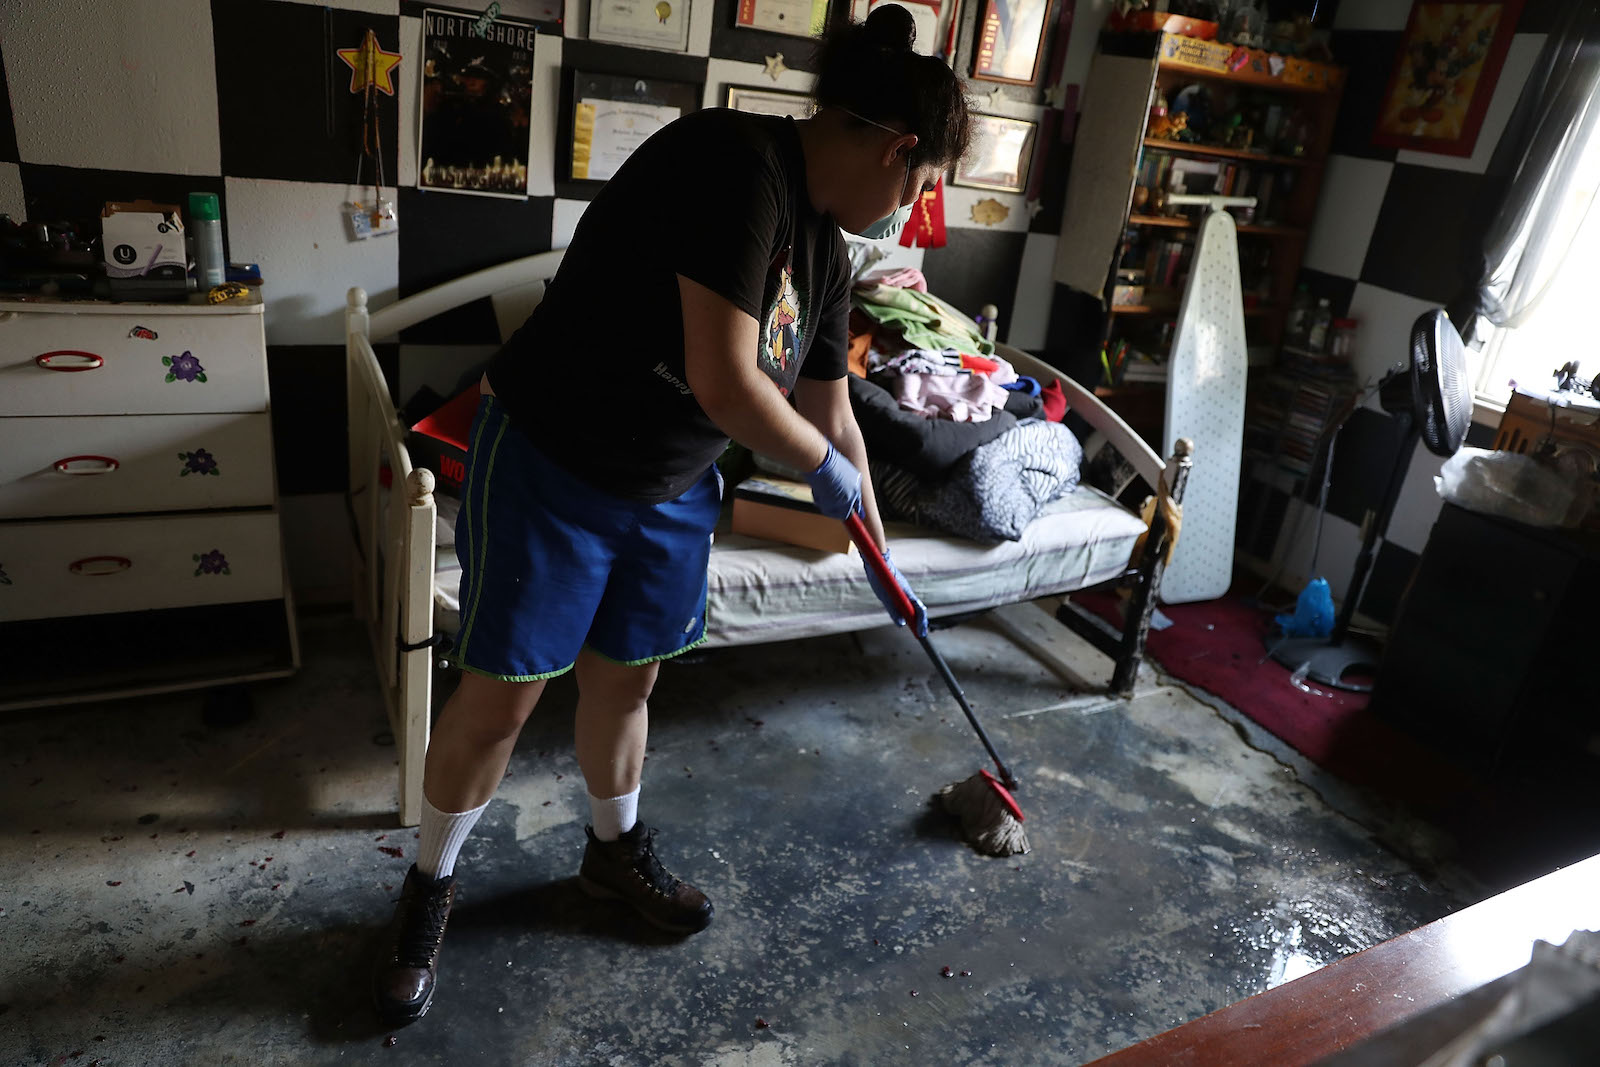 A woman with dark hair, wearing blue short and a black t-shirt, mops up floodwater in her bedroom in Houston, Texas following Hurricane Harvey in September 2017.